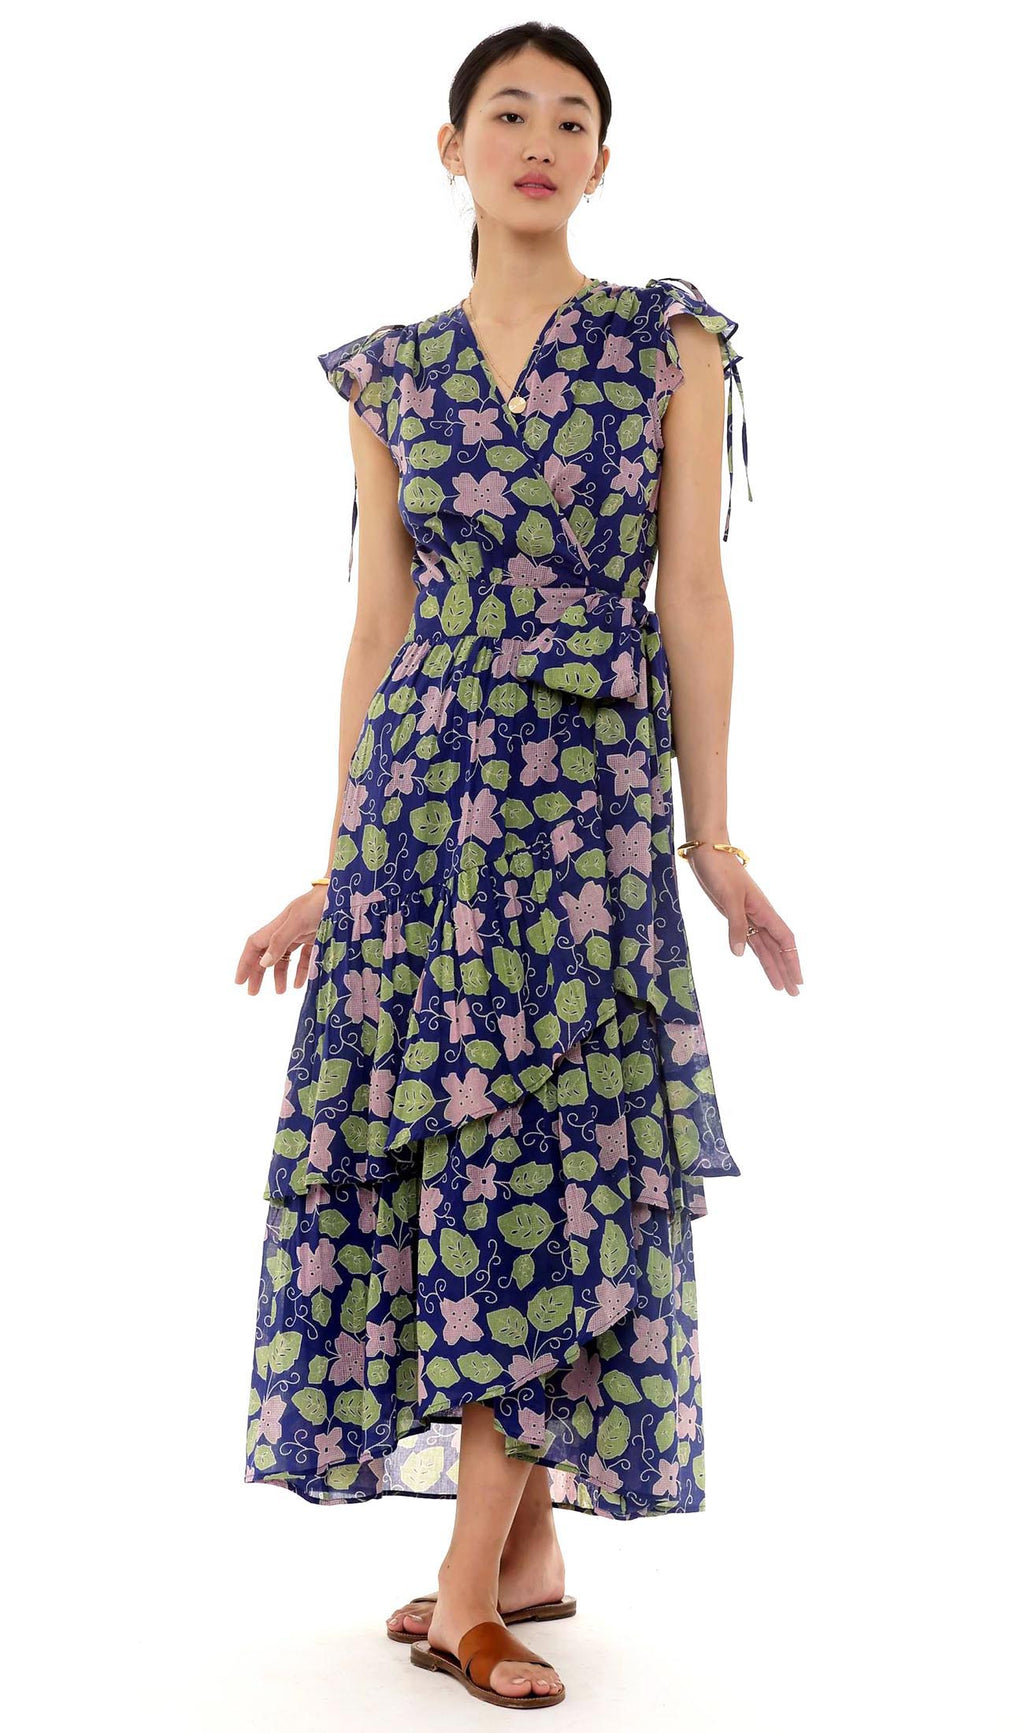 Banjanan Mercy Dress Familia Flor Blueprint